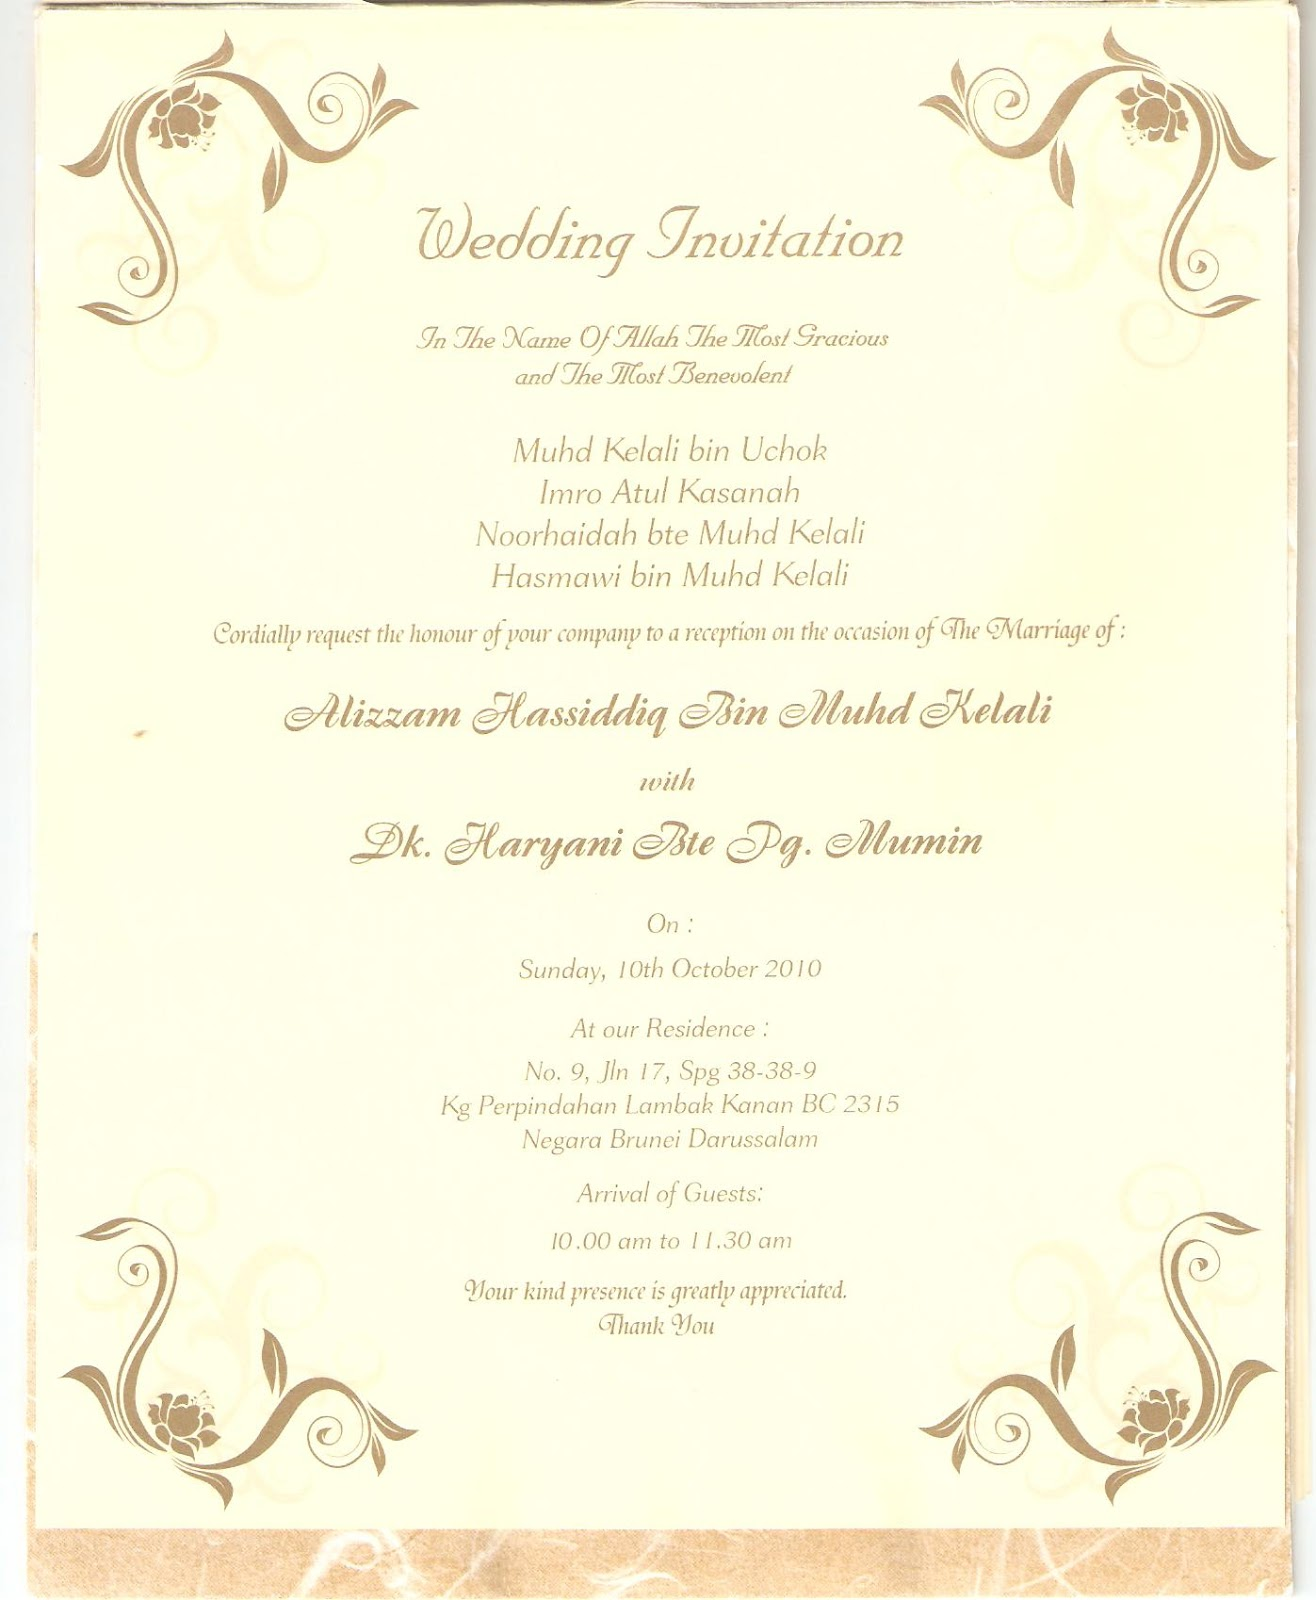 Nikah Invitation Cards Template Images Nikah Invitation Cards - Nikkah invitation template